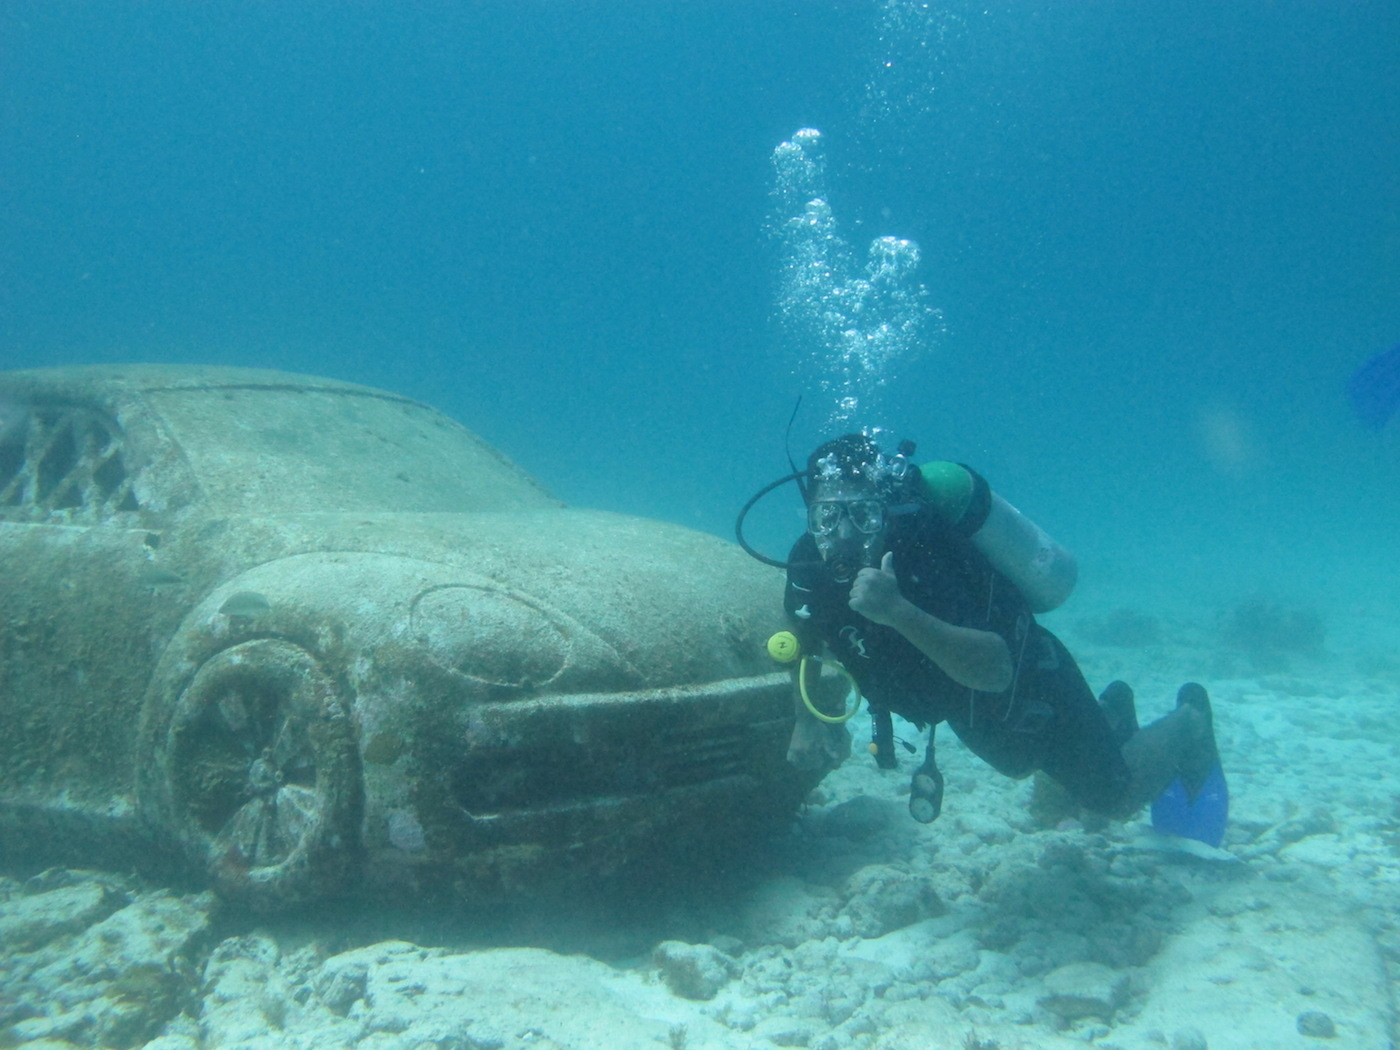 MUSA-Underwater-Museum-Snorkeling-Scuba-Diving-Tours-Isla-Mujeres-Carey-Dive-Center-2